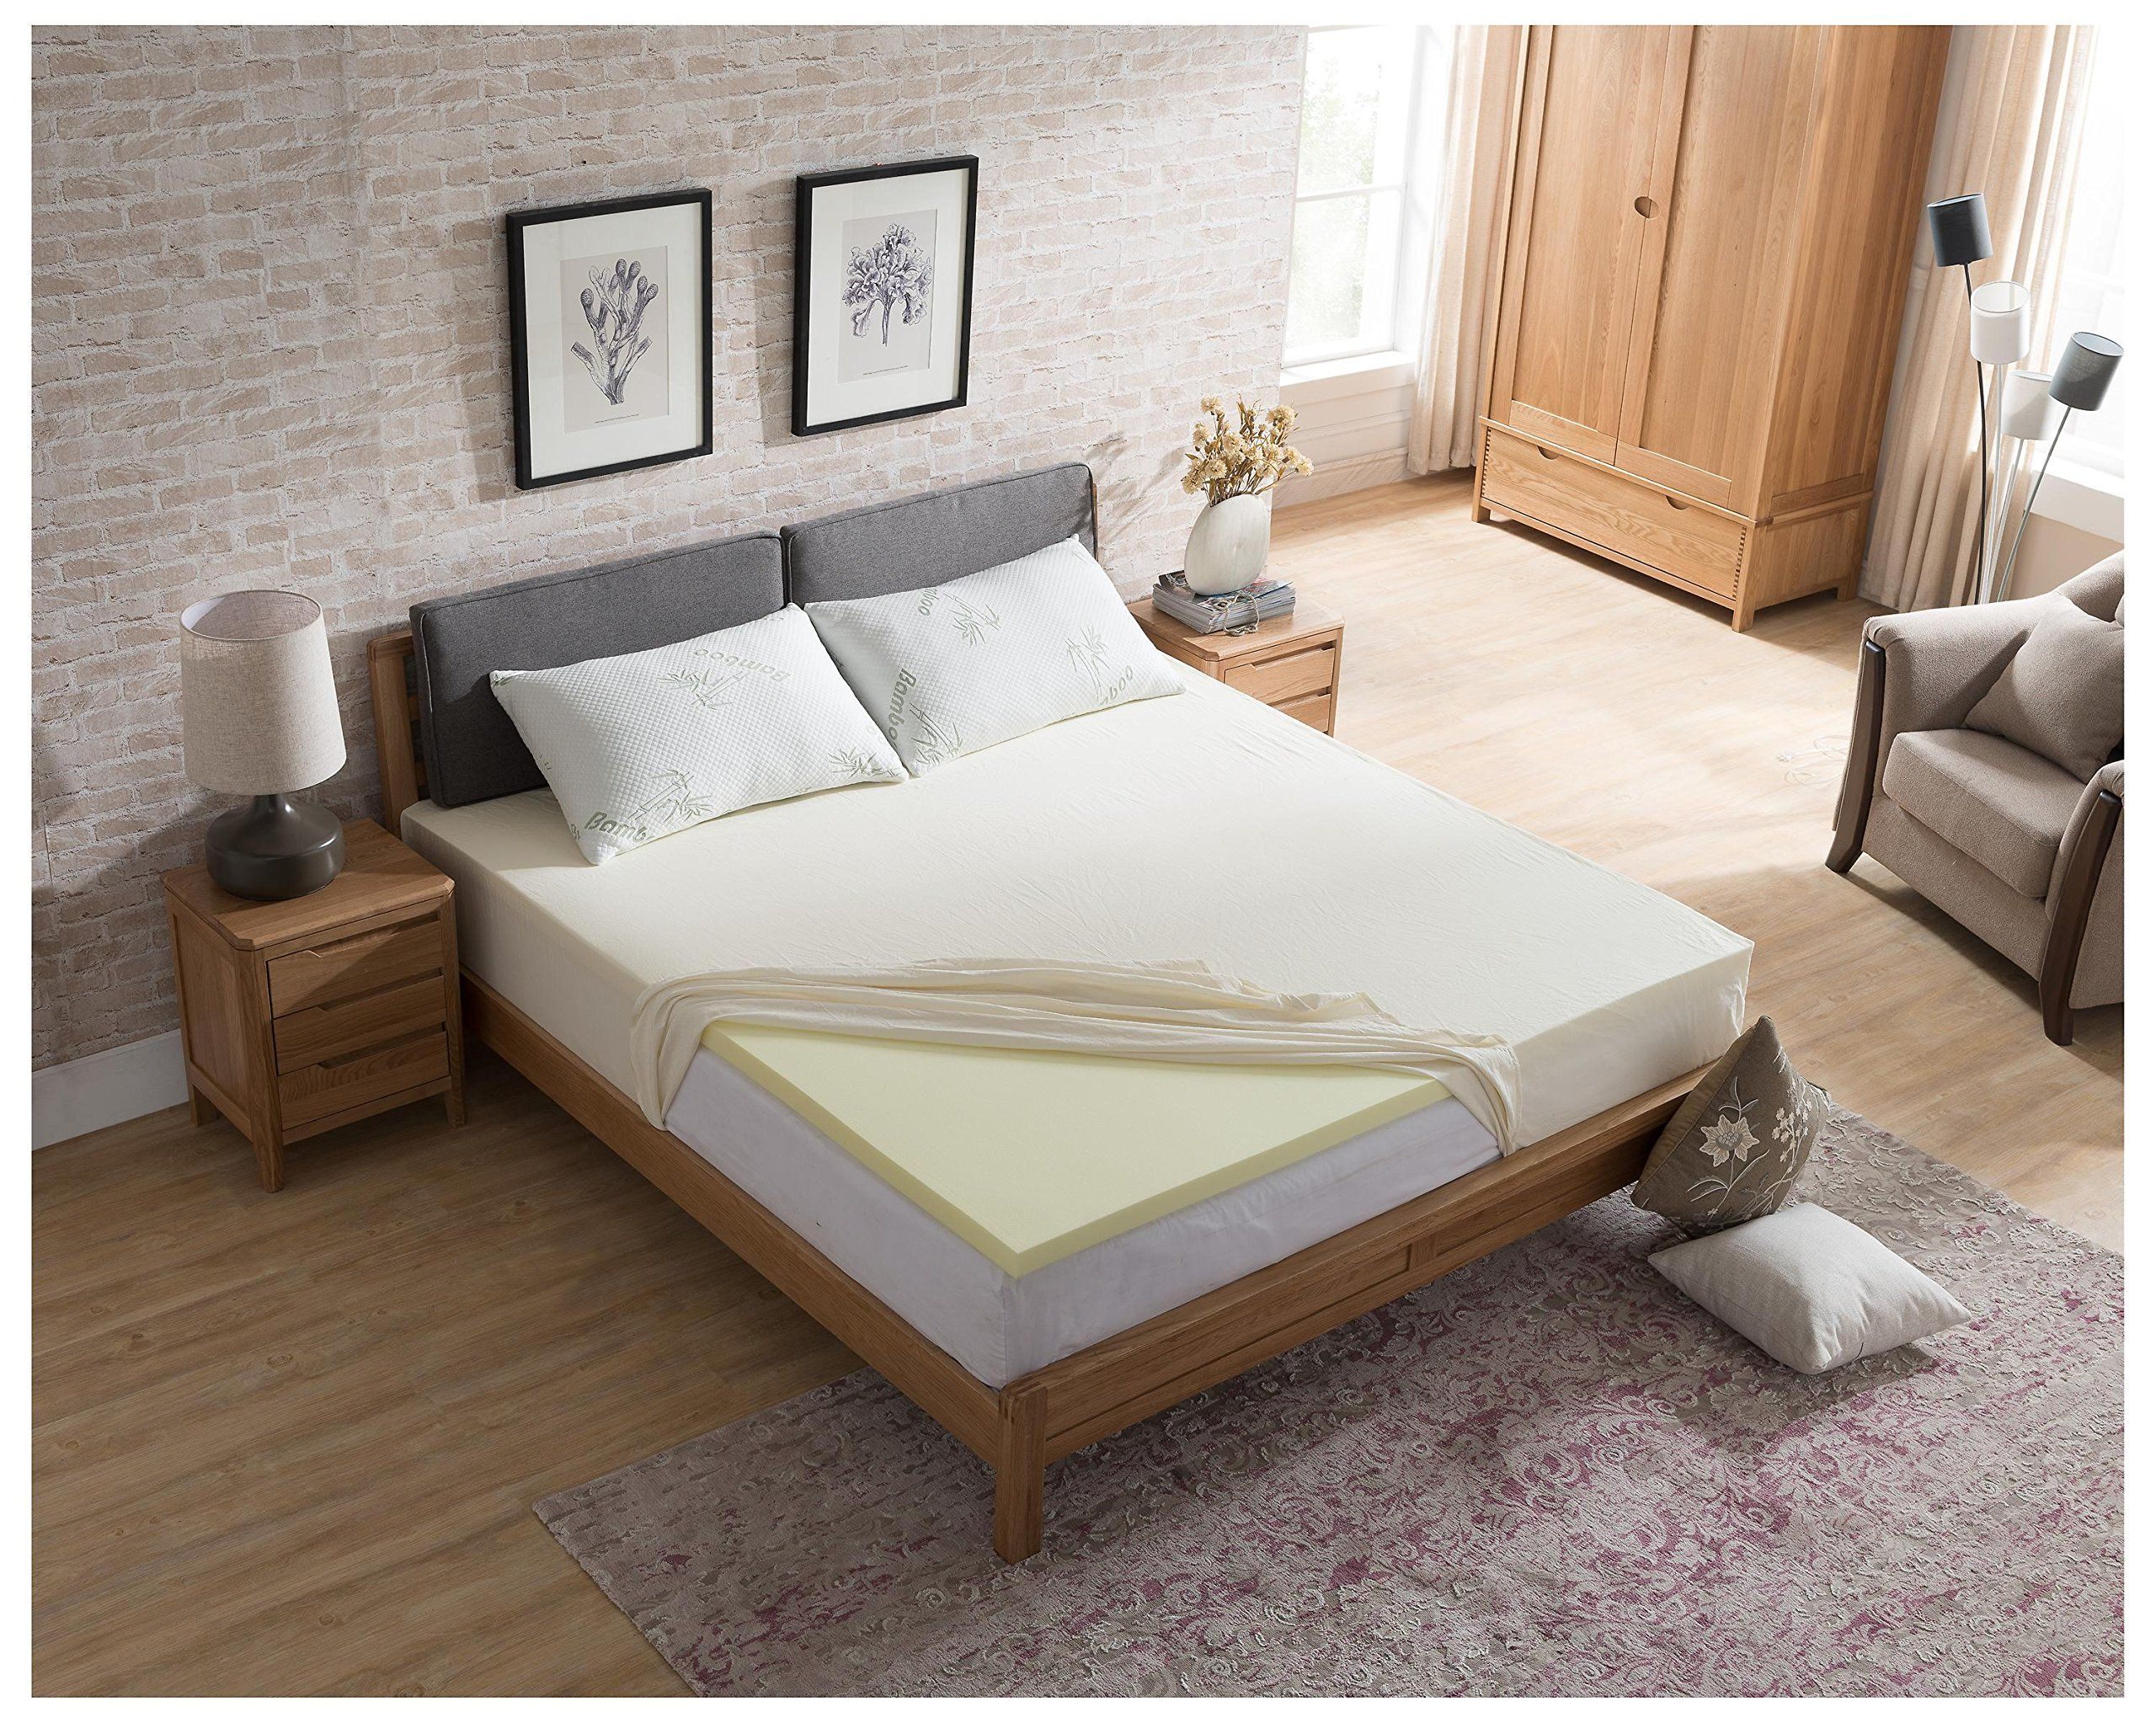 Alveo Memory Foam Mattress Topper King Size Read More Reviews Of The Product By Visiting The Link On The Image Mattress Springs Uk Mattress Best Mattress